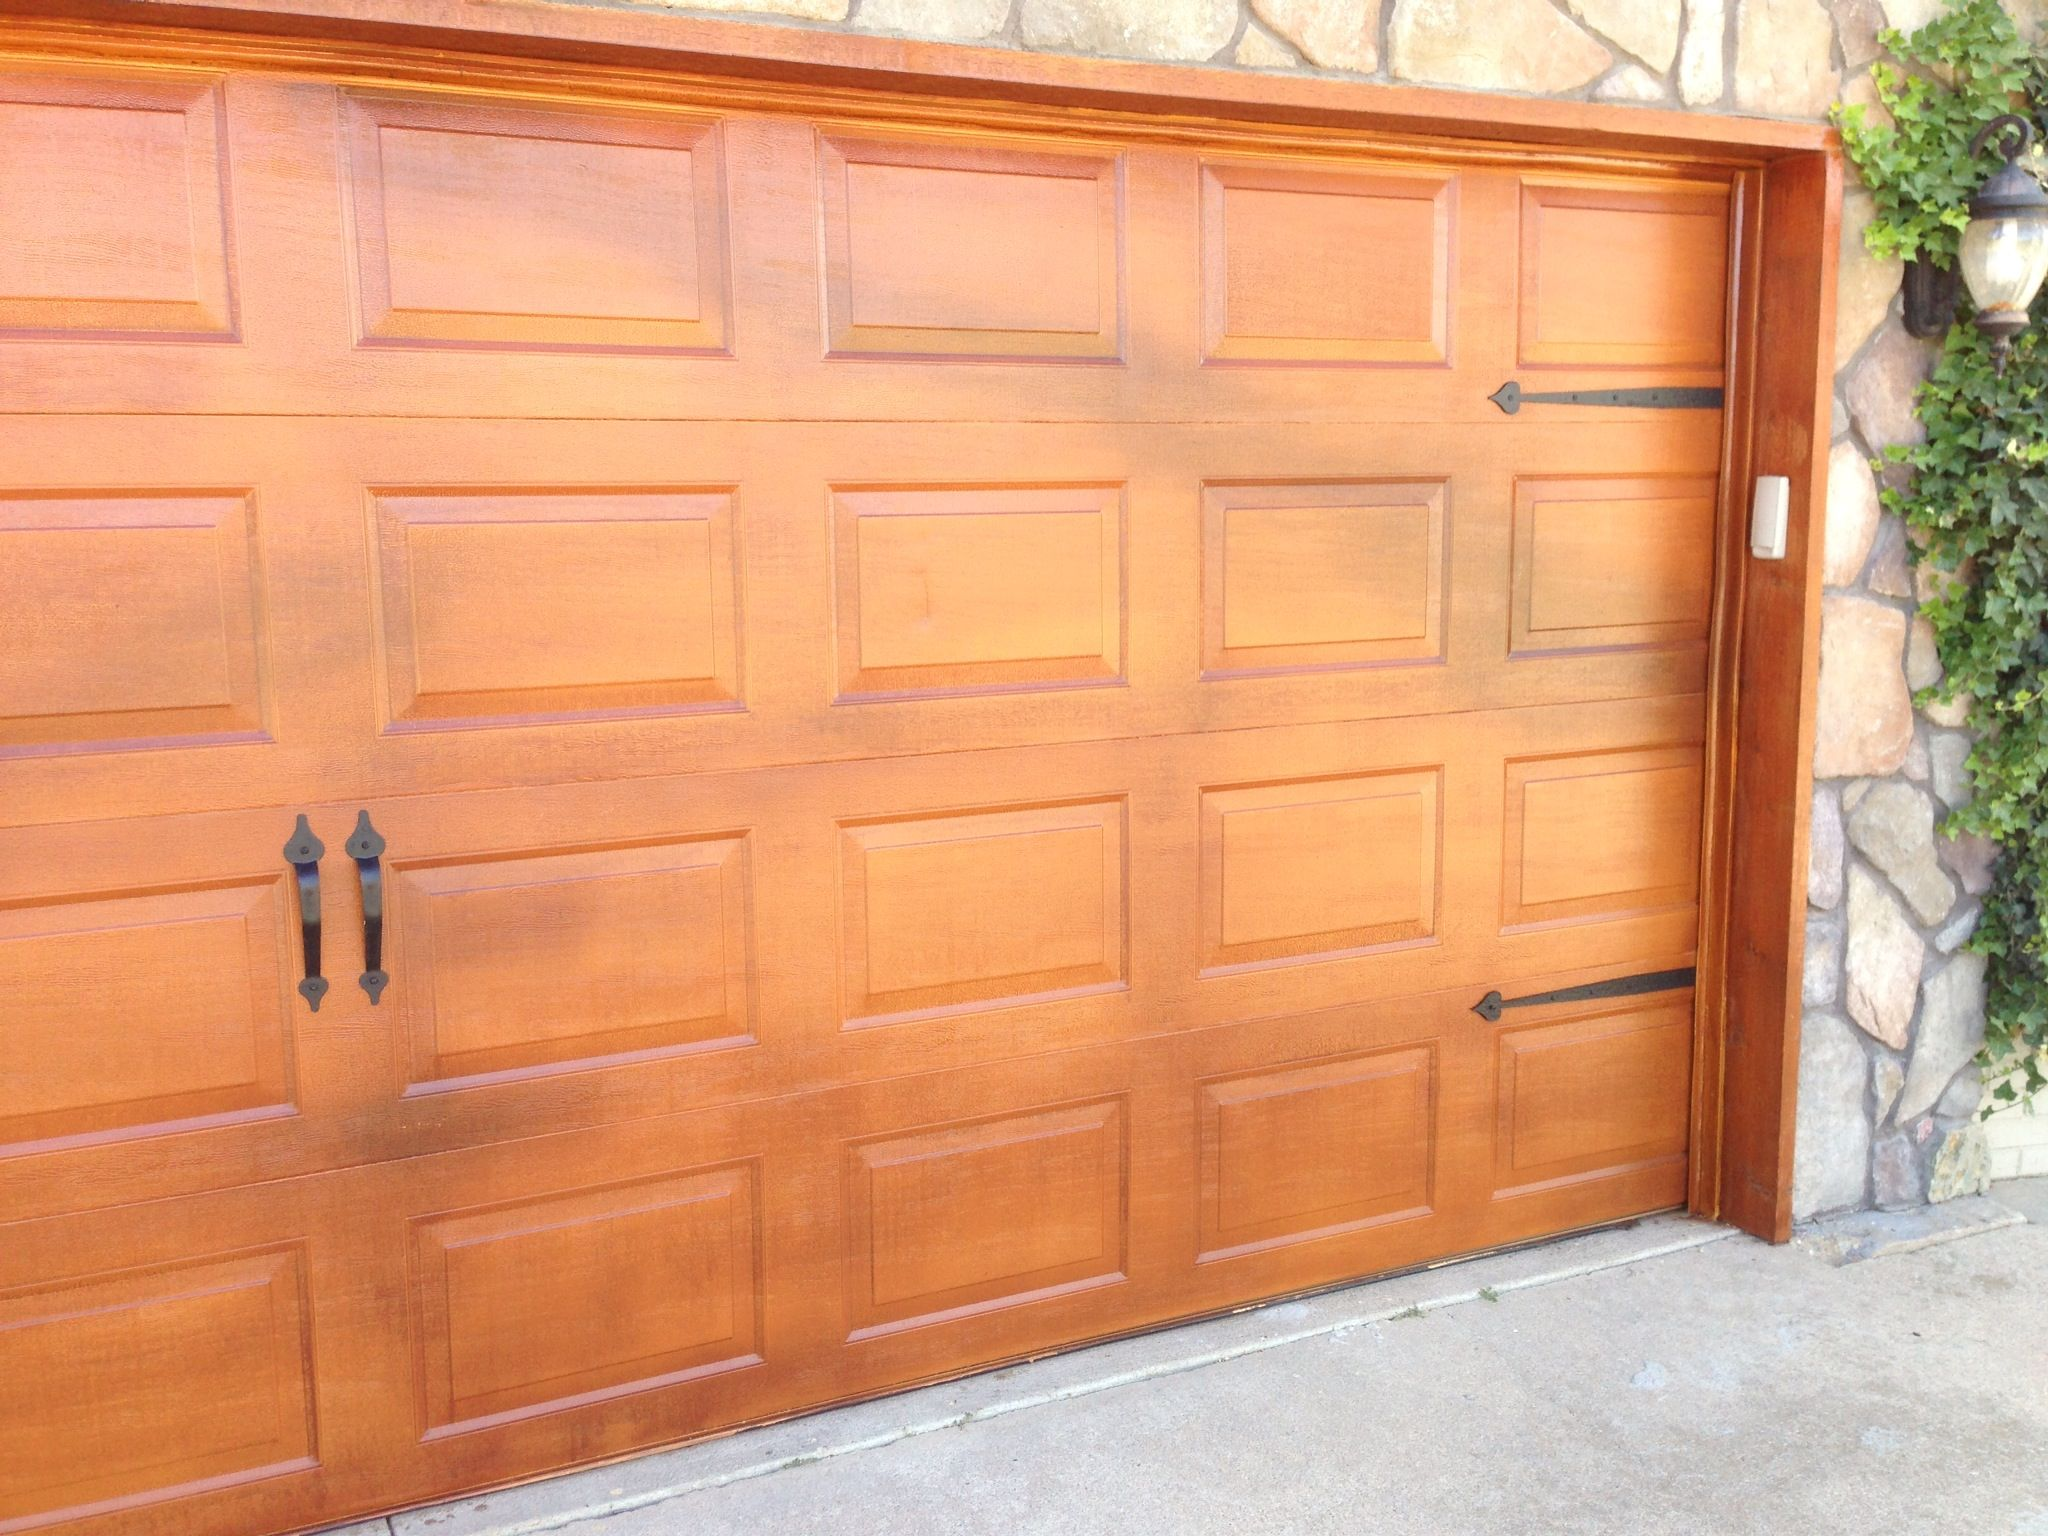 Garage Door Maintenance Tips that Are Worth Knowing